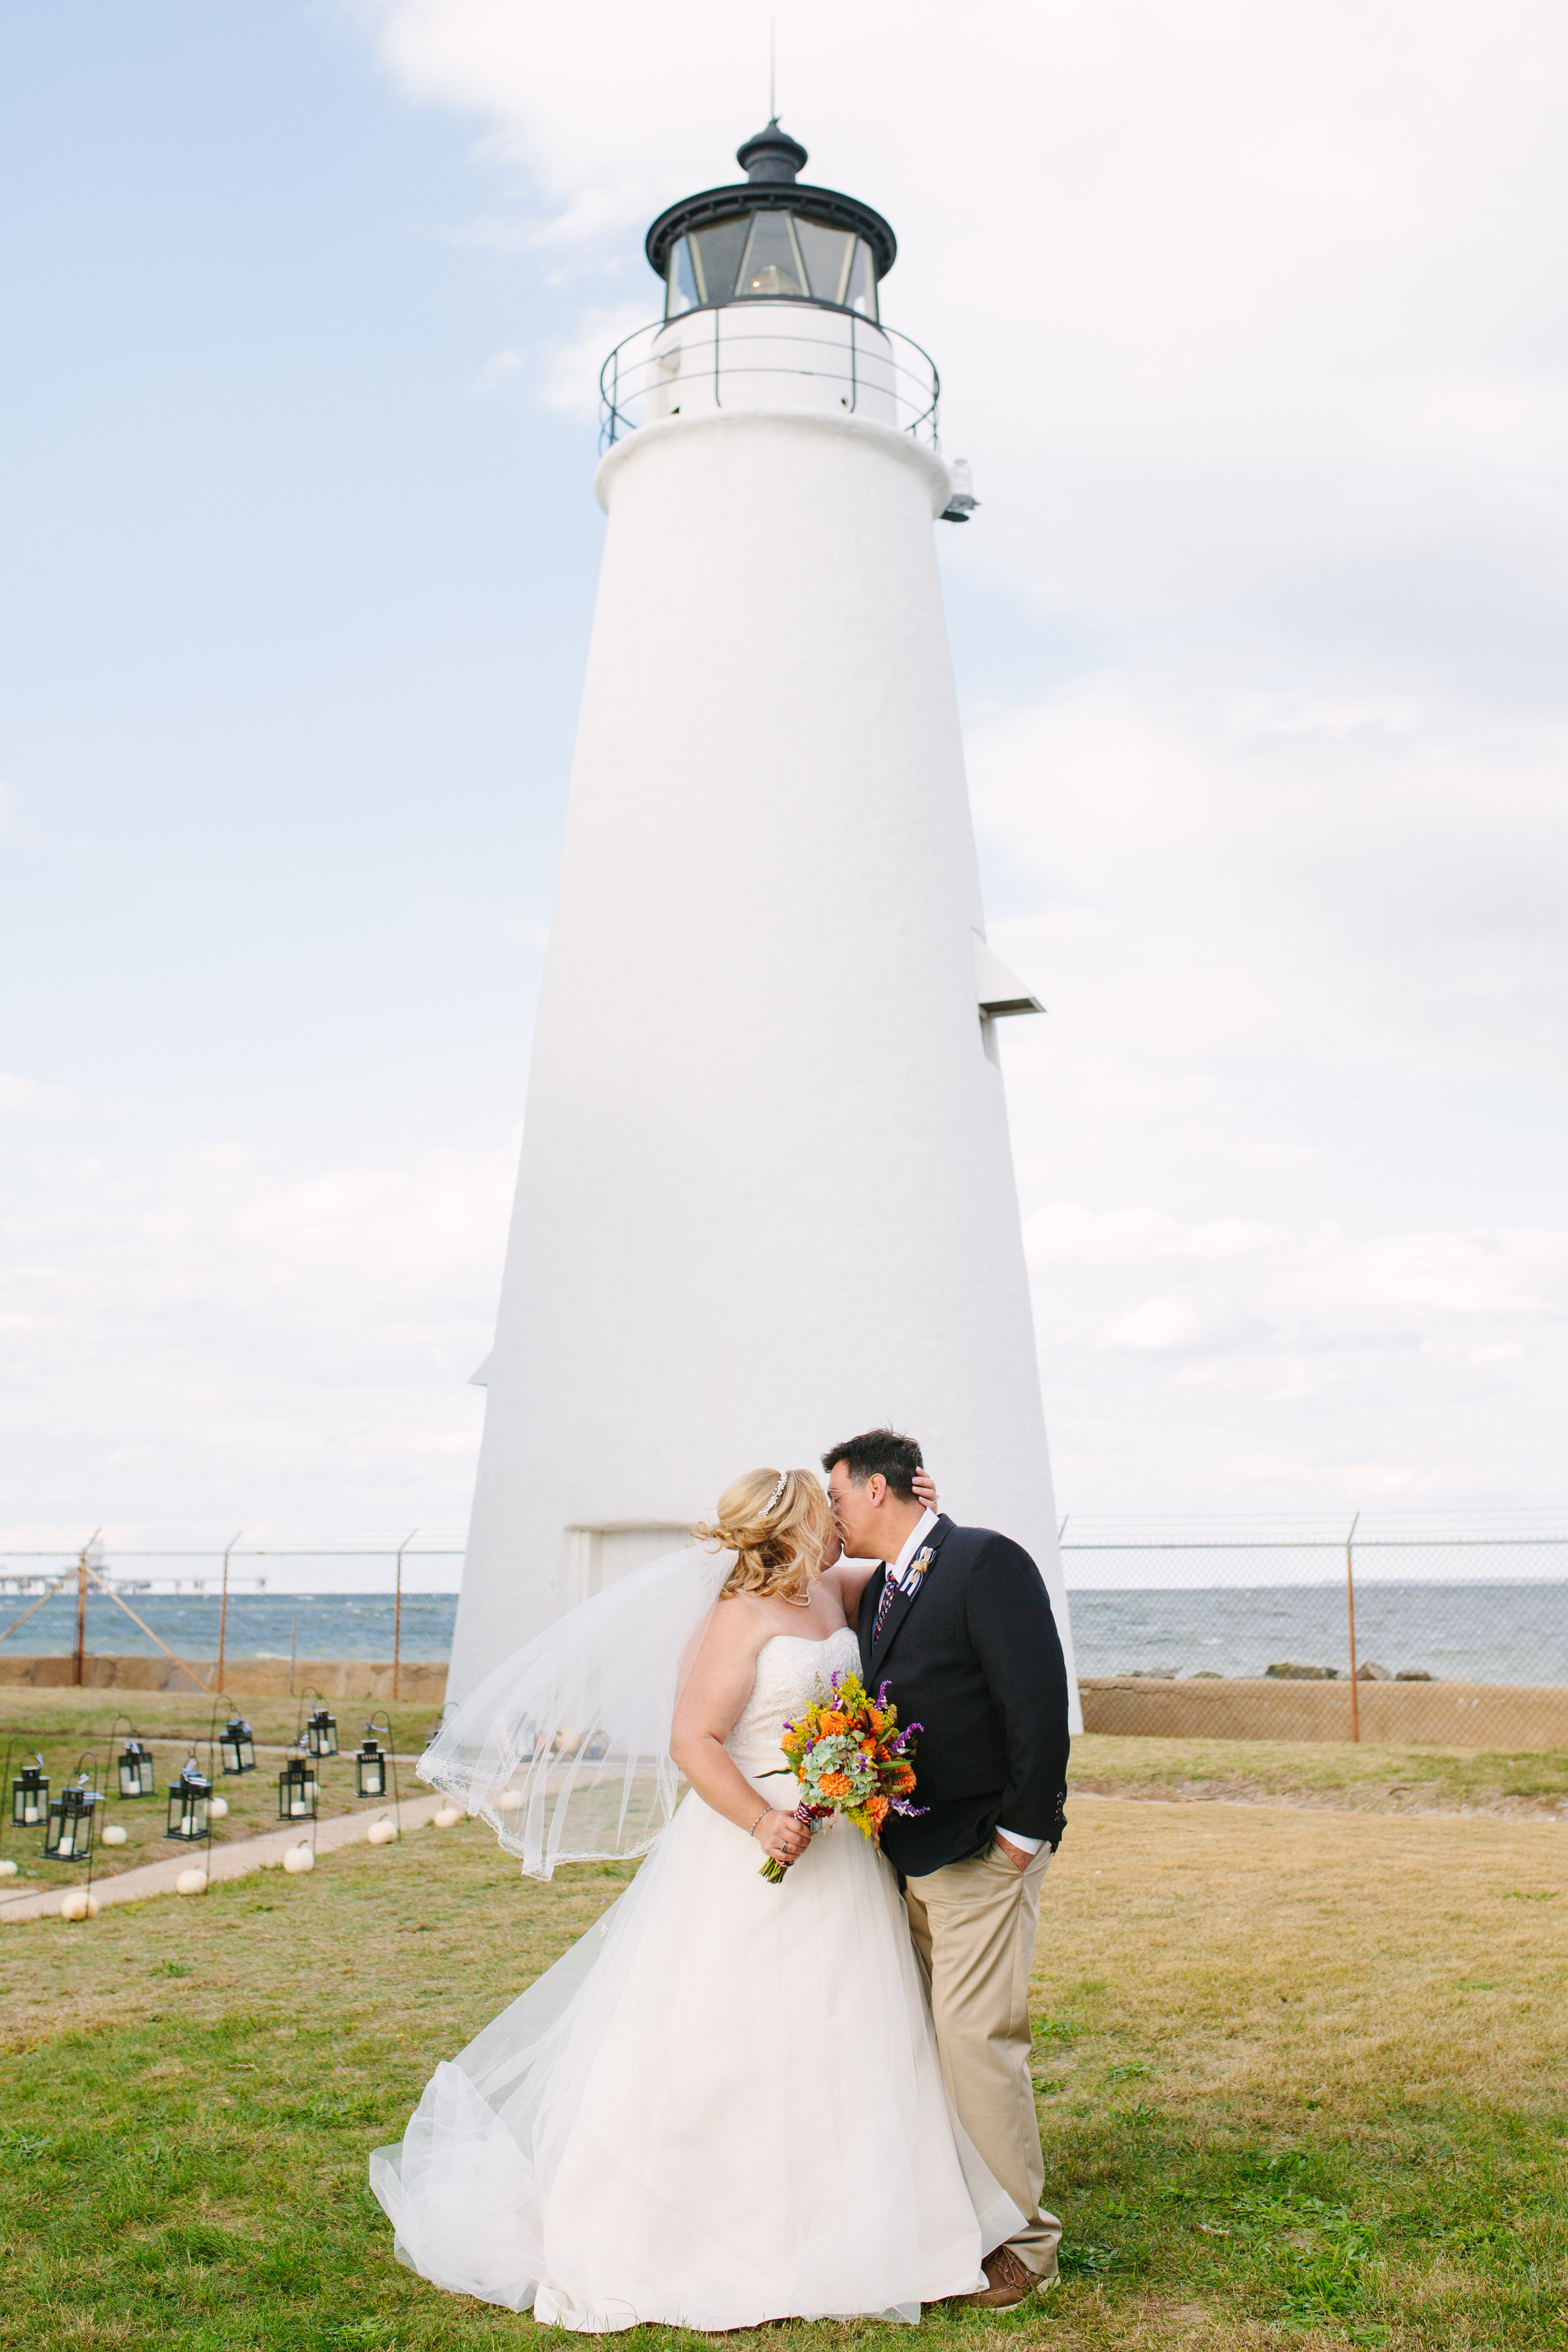 Southern Maryland Nautical Wedding: Melissa + Rich - United With Love